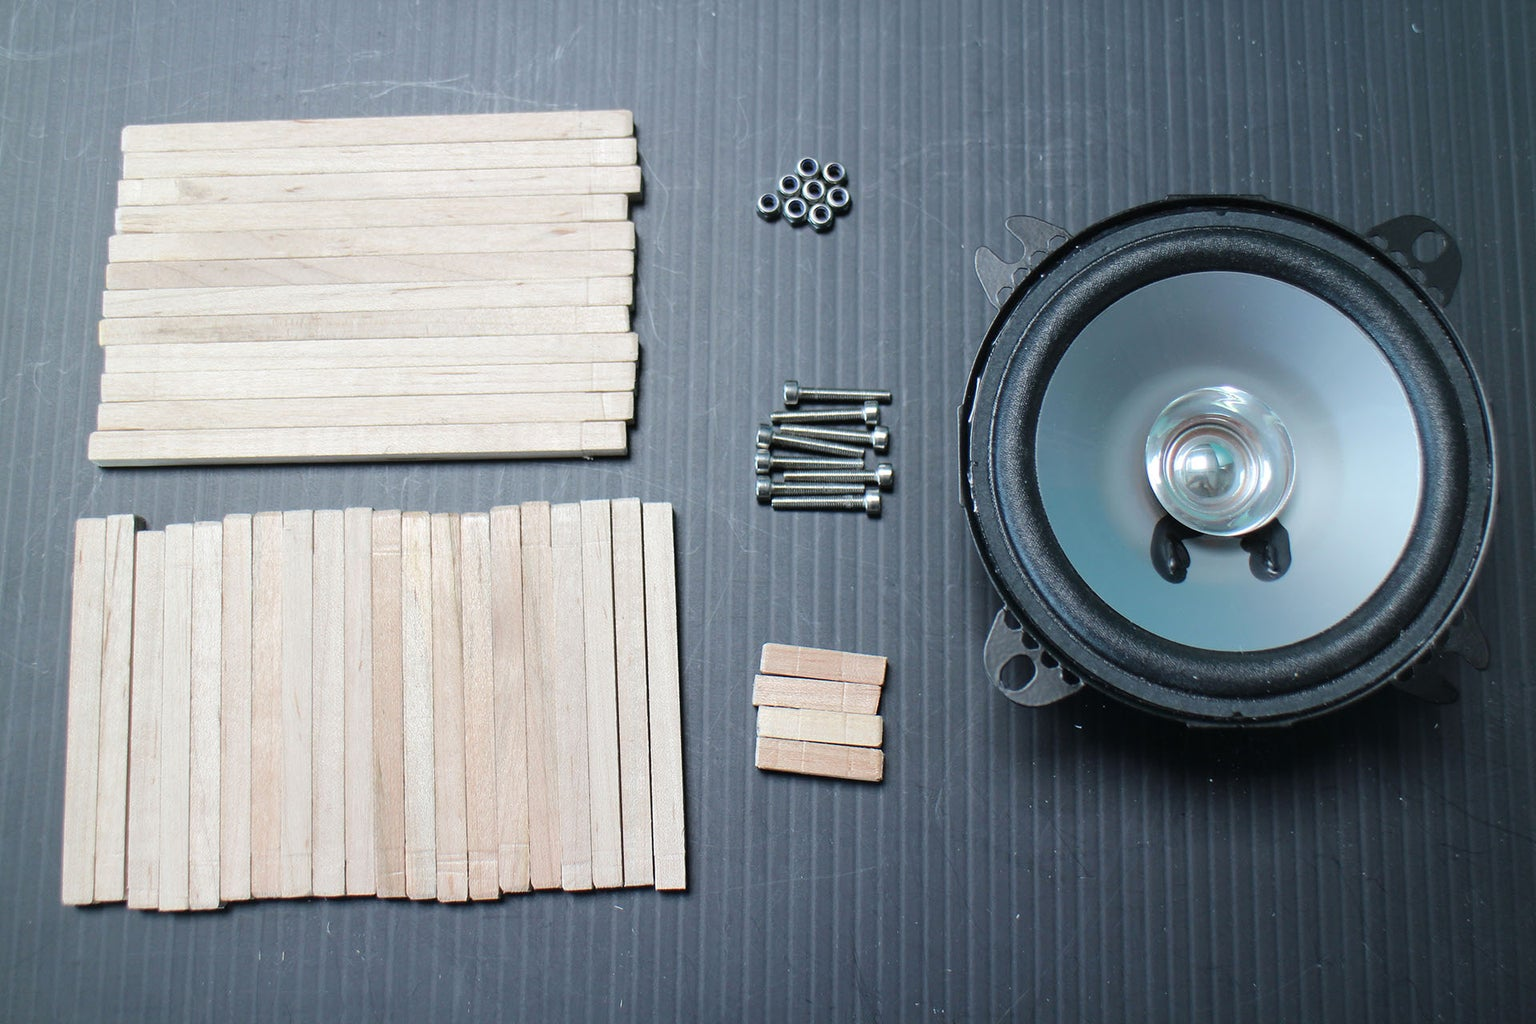 Assembly: Prepare Dowels